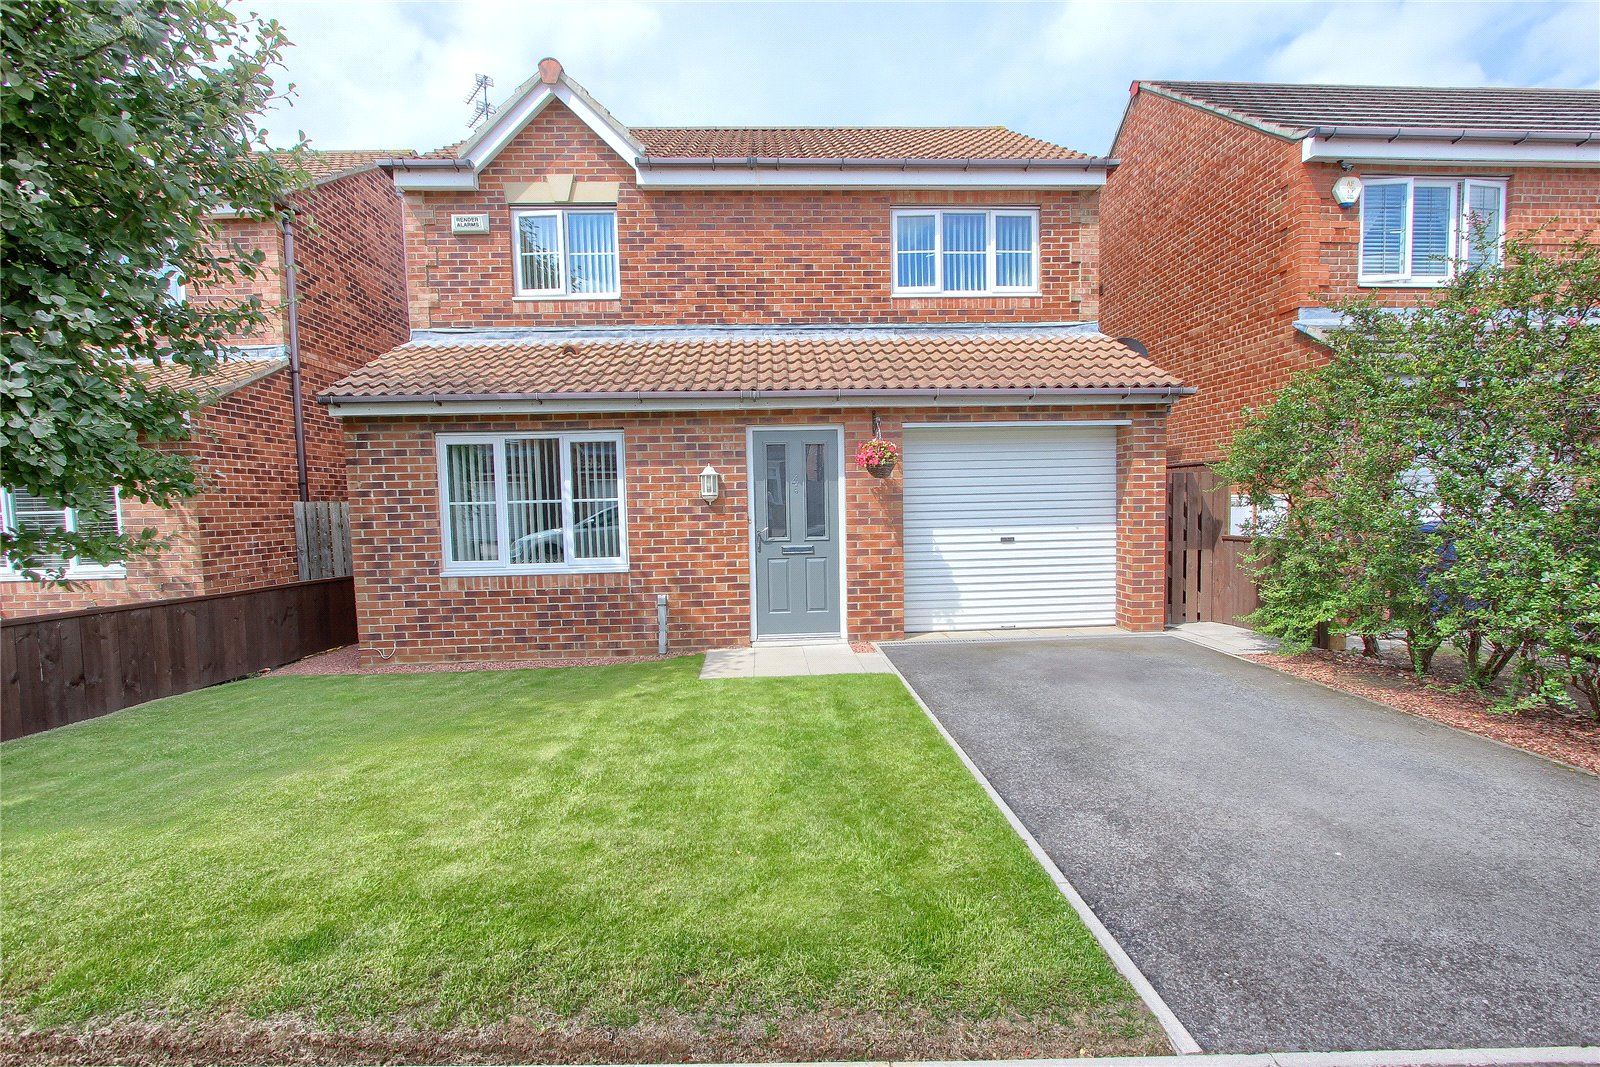 3 bed house for sale in Southwold Close, Redcar 1